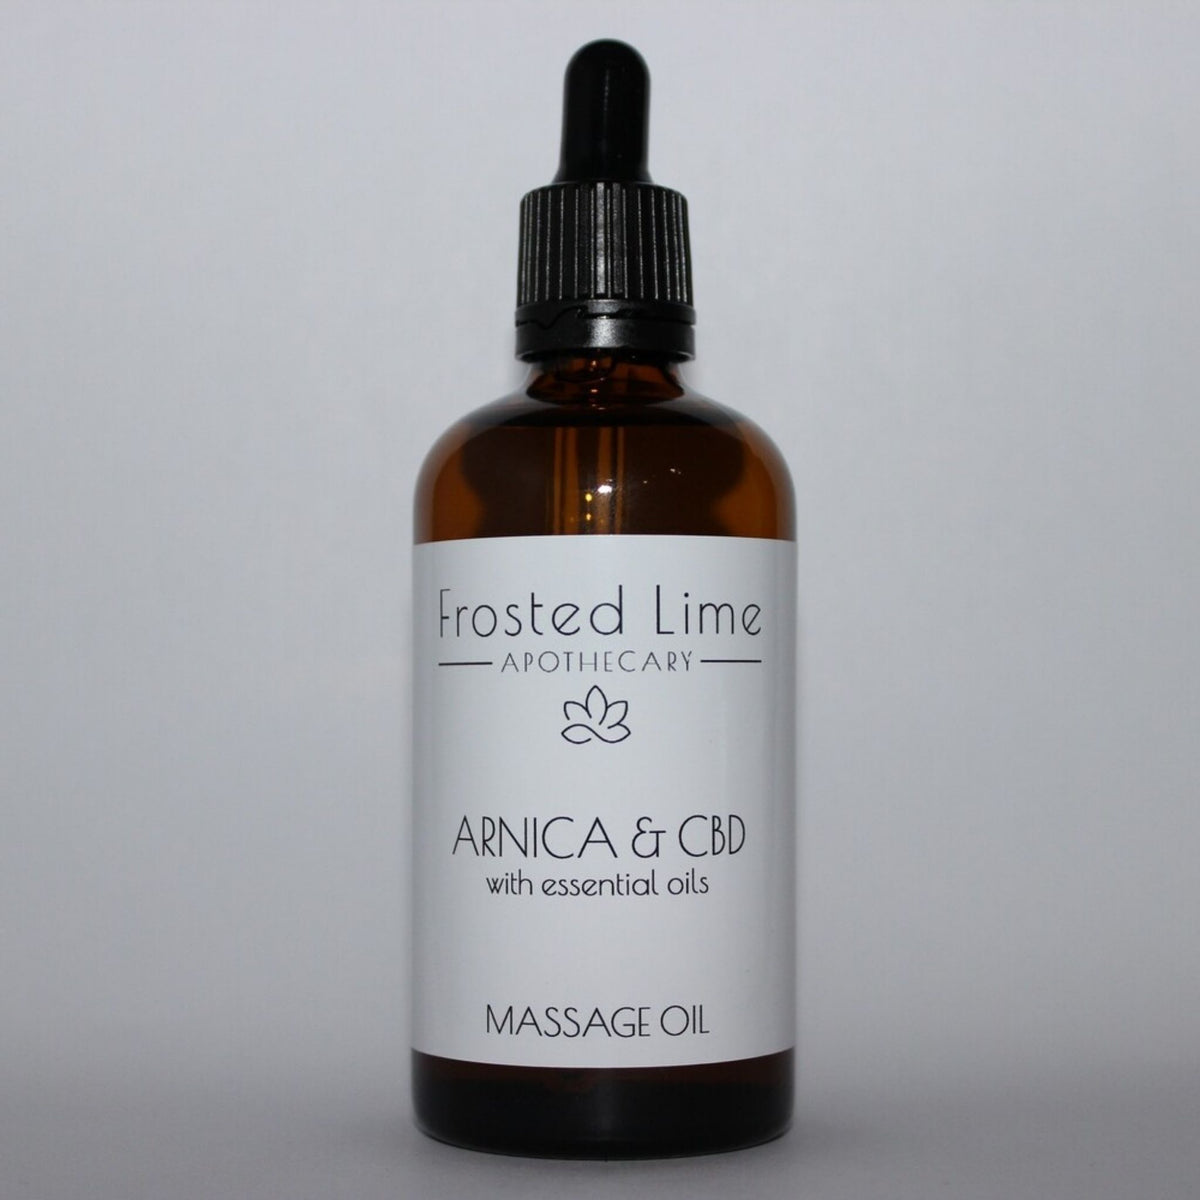 Frosted Lime Apothecary – Arnica & CBD Massage Oil